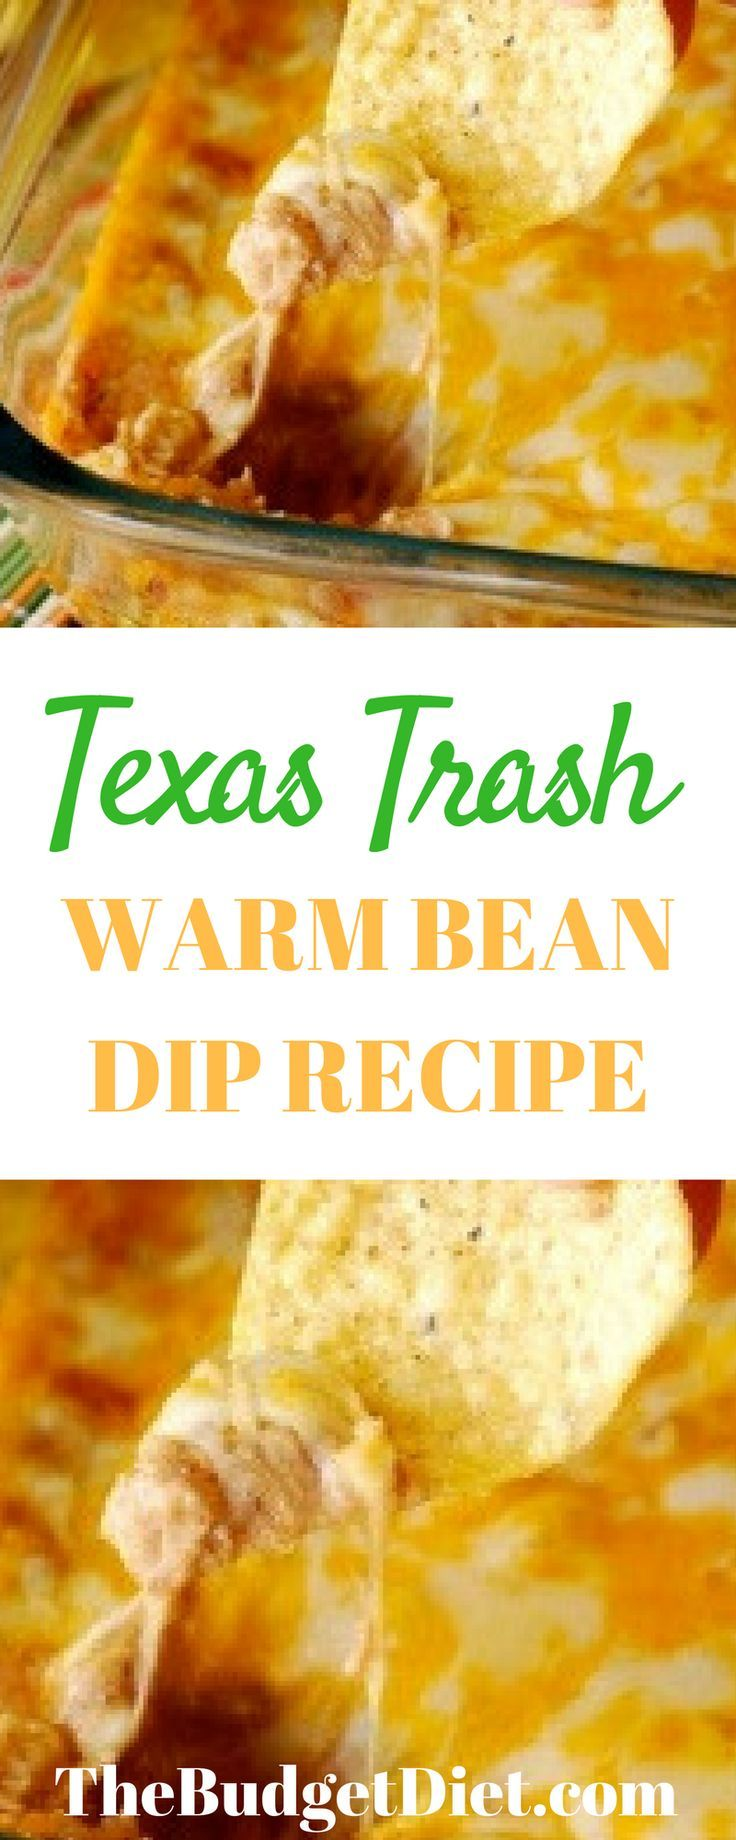 Texas Trash Warm Bean Dip Recipe | The Best Super Bowl - Or to Any Party Dip Recipe